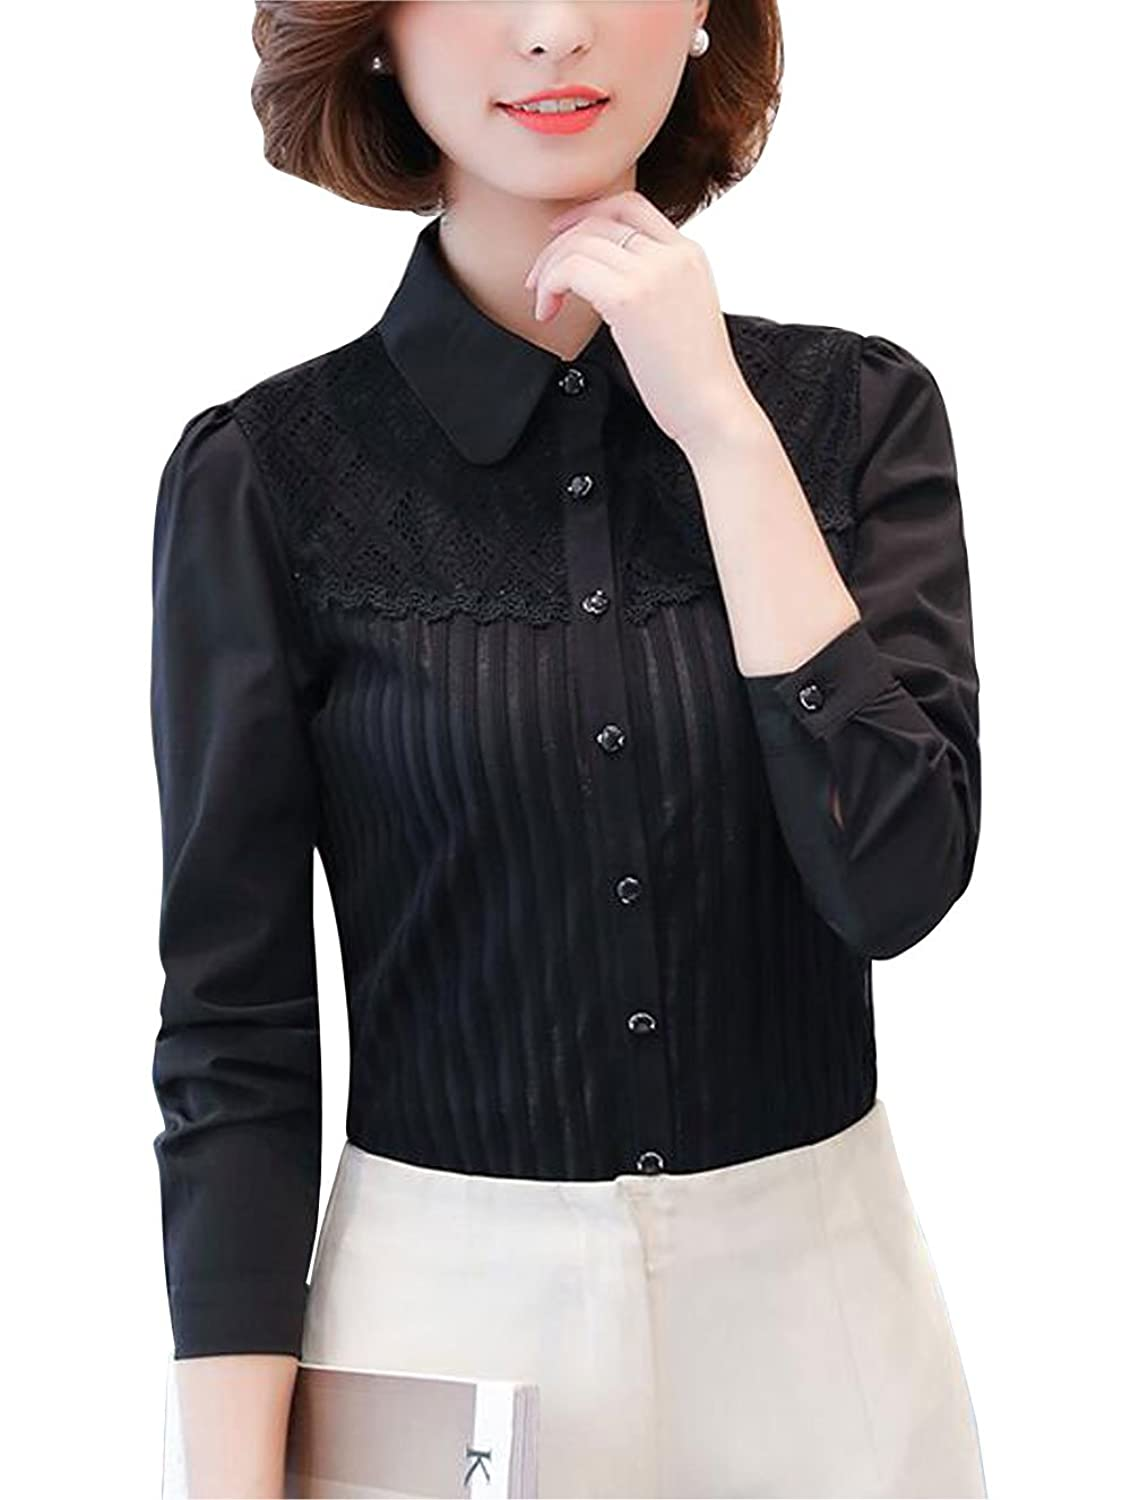 1920s Style Blouses, Shirts, Sweaters, Cardigans Double Plus Open DPO Womens Vintage Collared Pleated Button Down Shirt Long Sleeve Lace Stretchy Blouse $23.59 AT vintagedancer.com